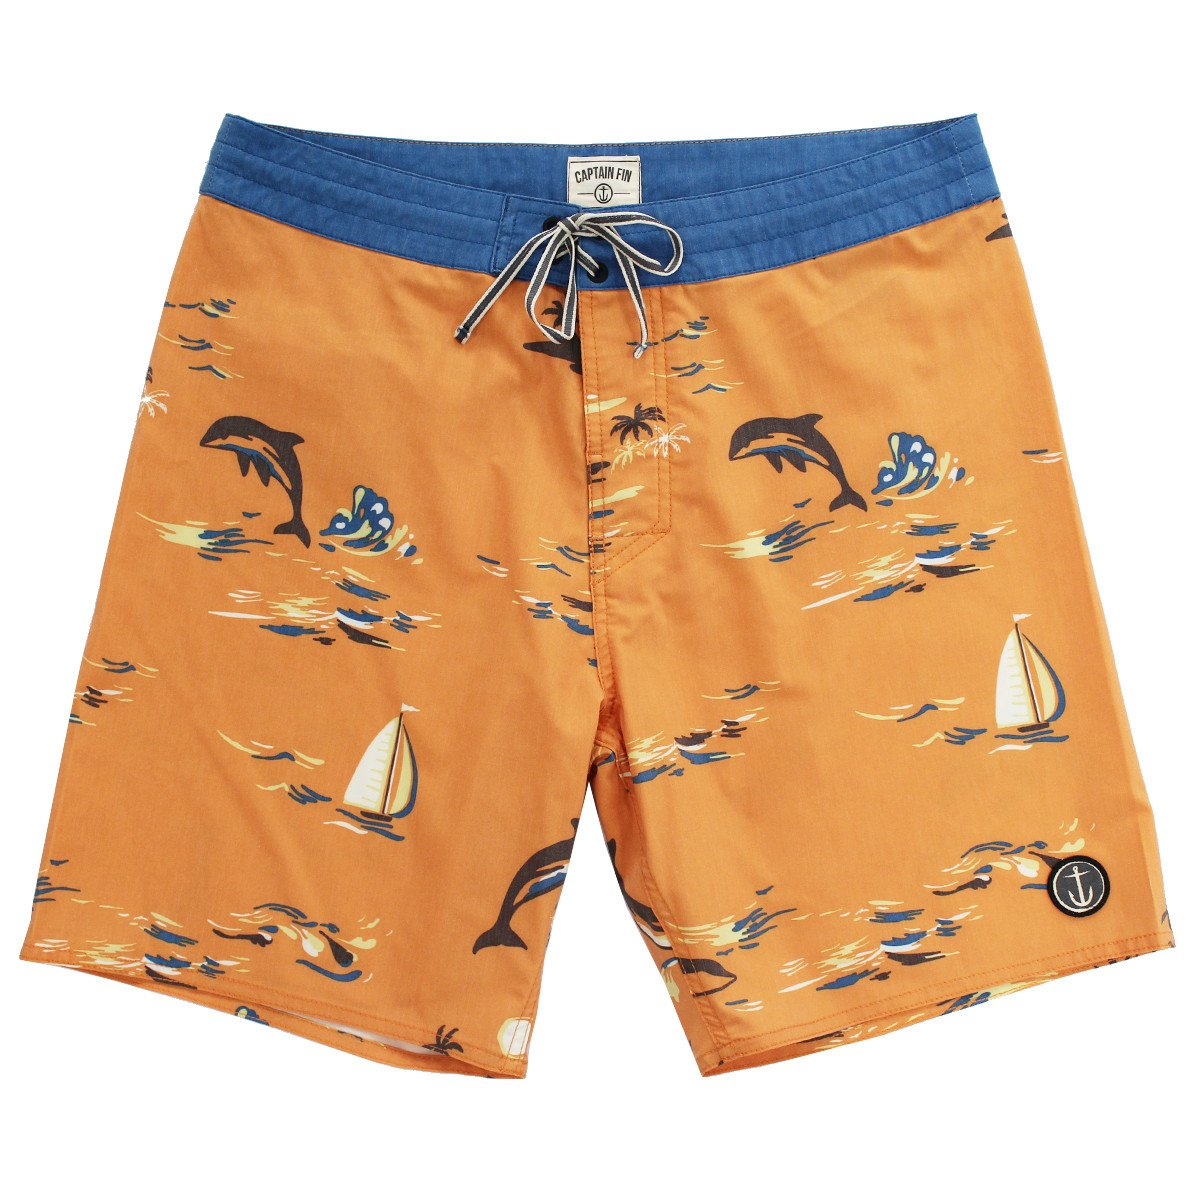 Leaping Dolphins Boardshort by Captain Fin